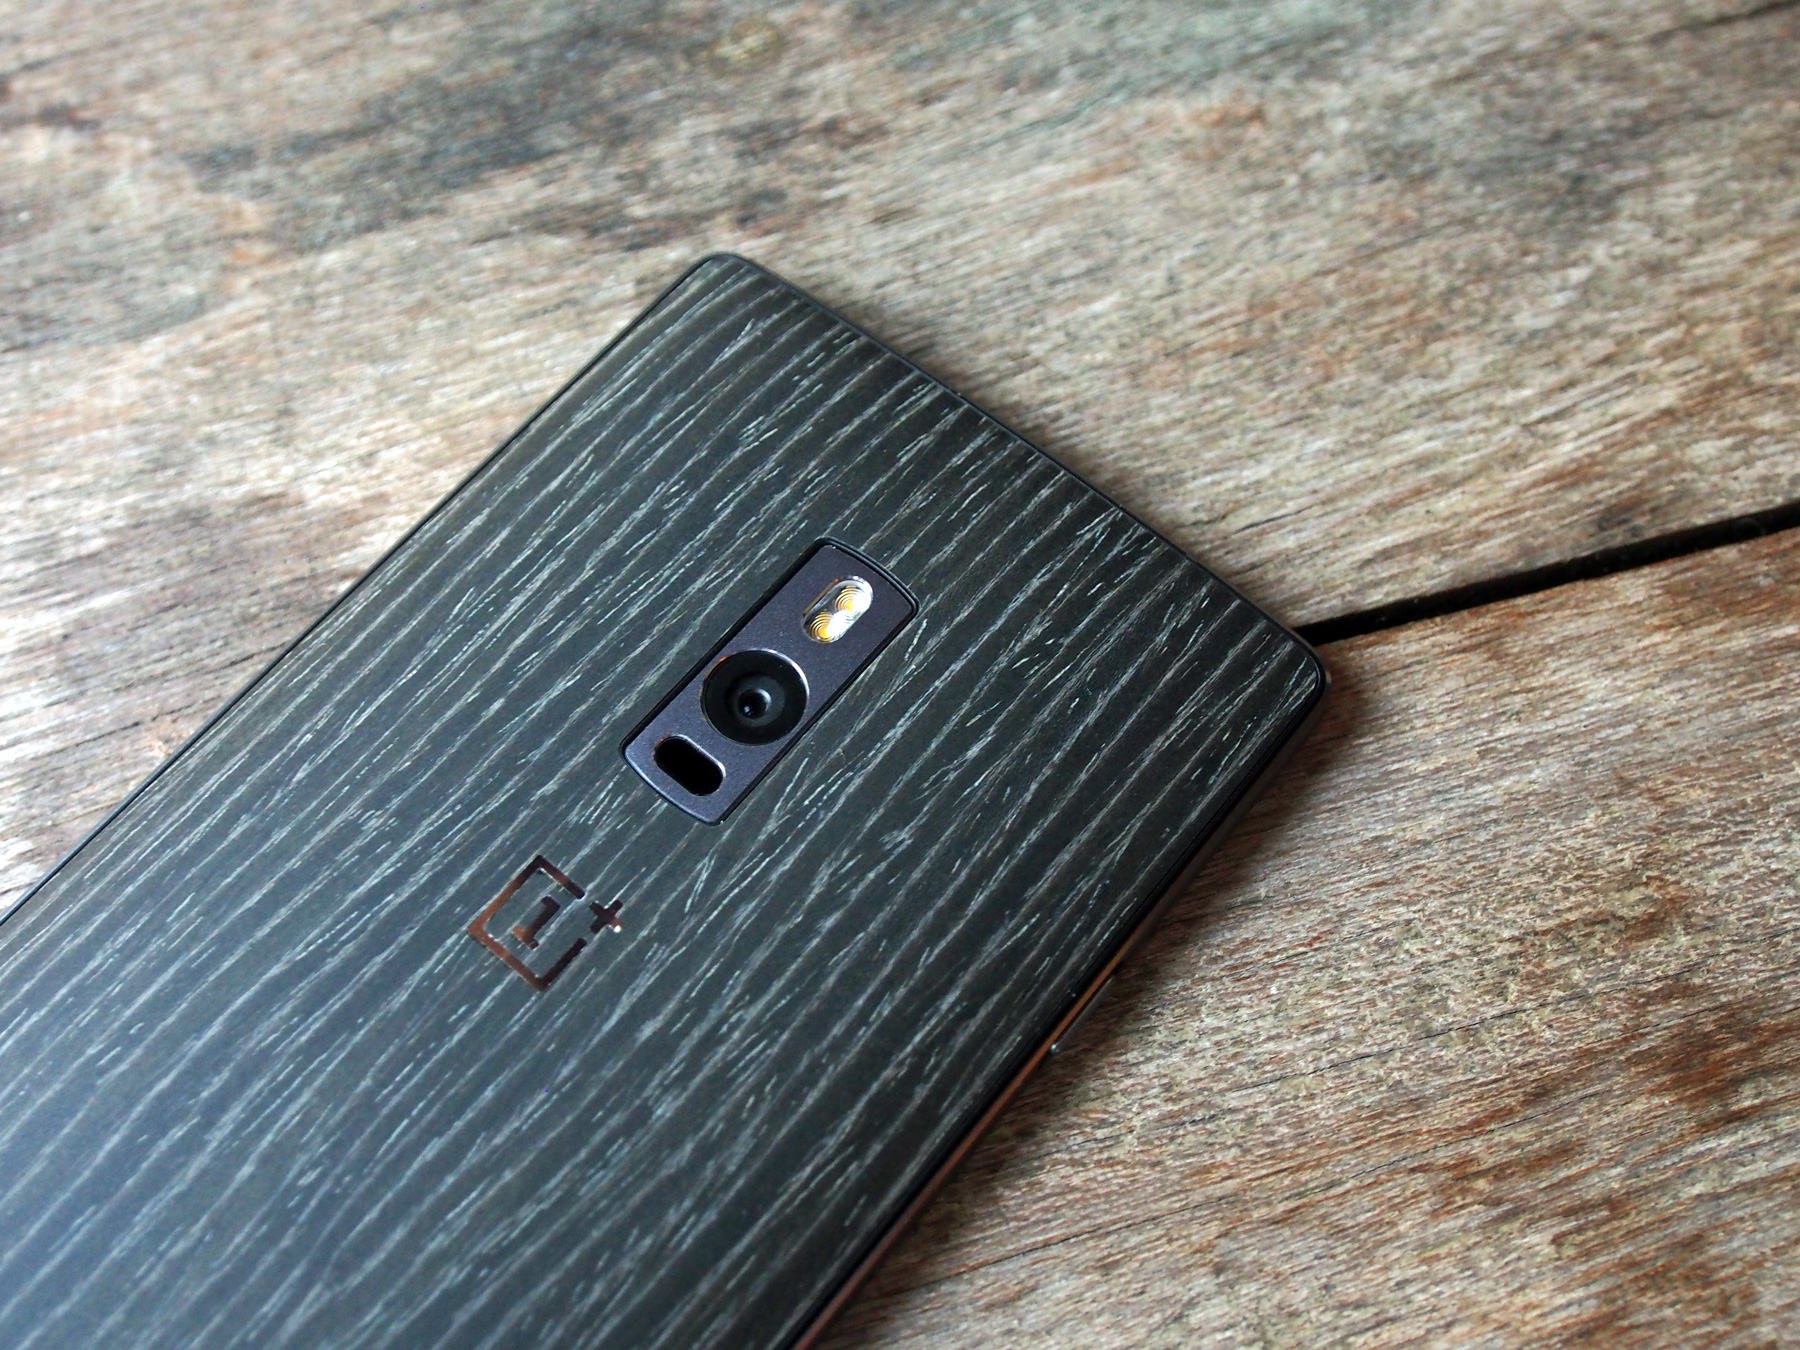 A closer look at the rear camera of the OnePlus 2.